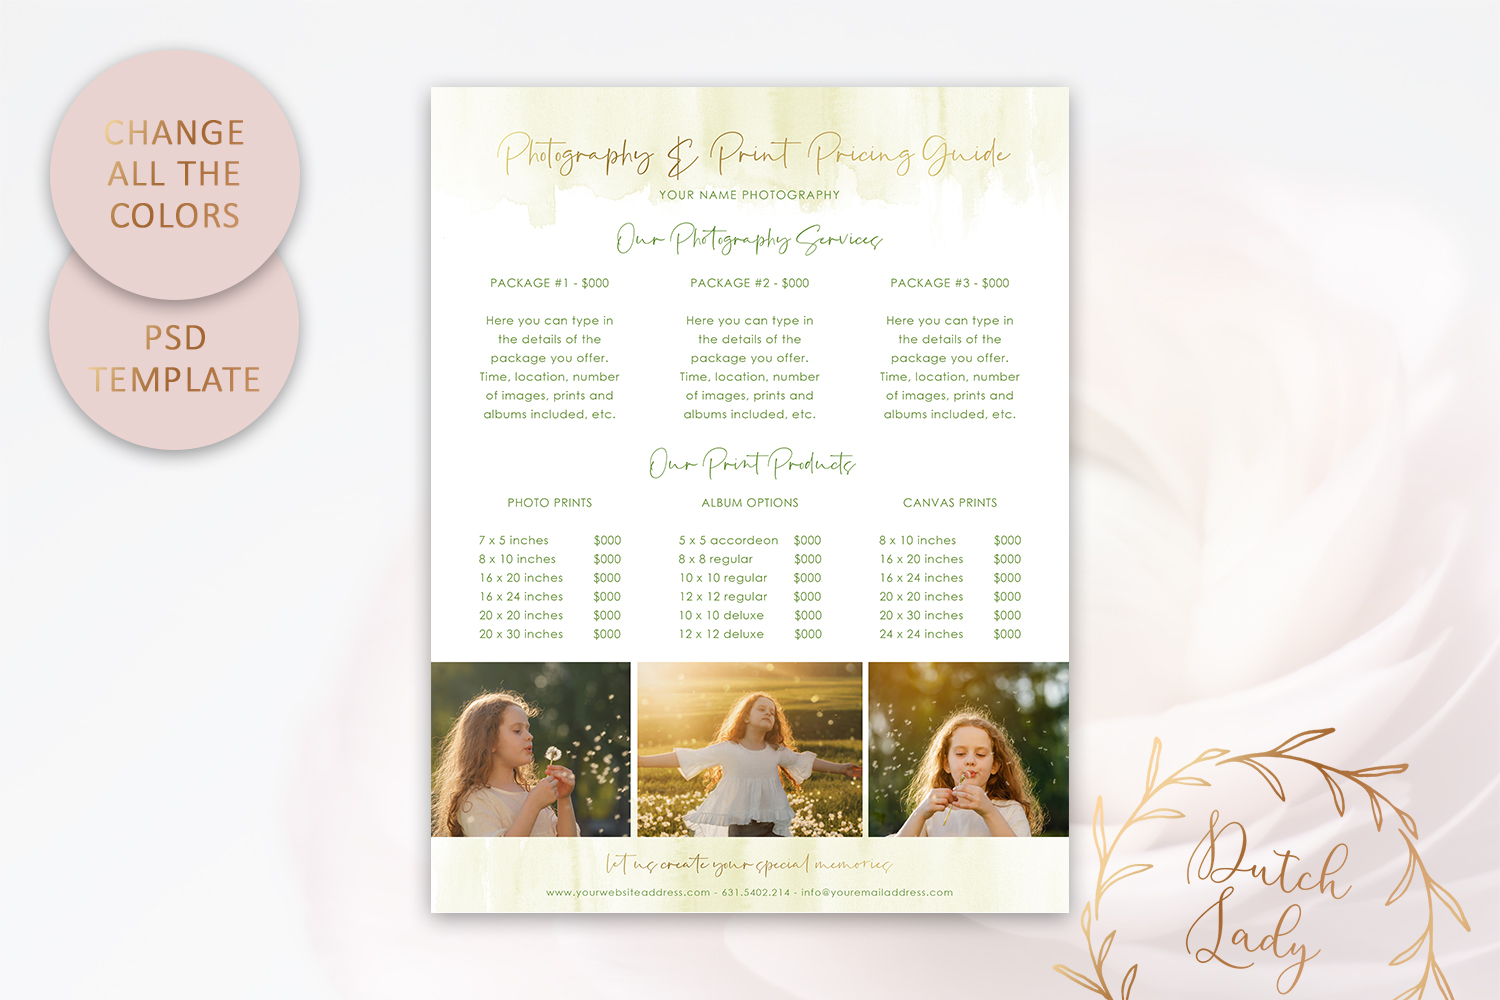 PSD Photography Pricing Guide Template Design #8 example image 4